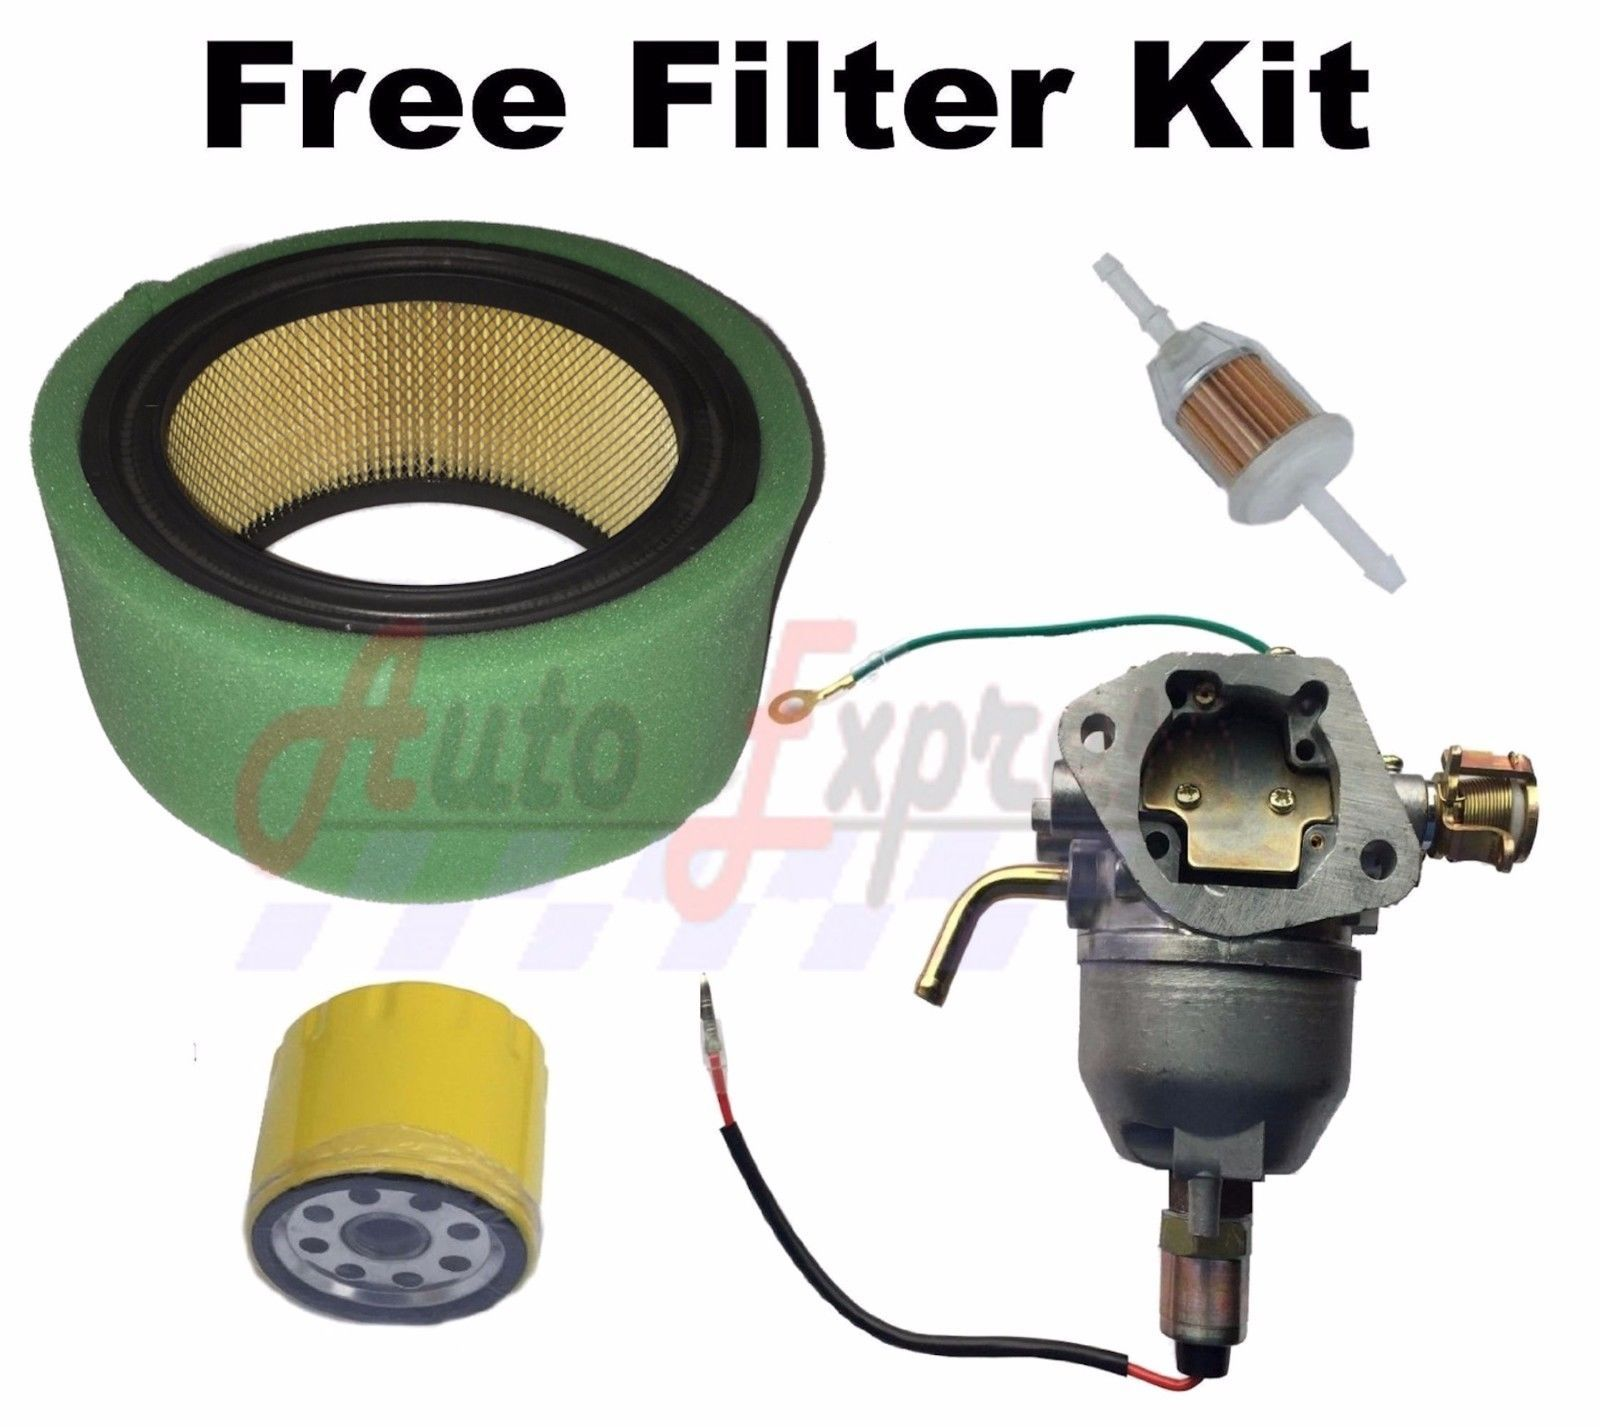 Carburetor Fits John Deere 60 Skid Steer Nikki Carb Tune Up Kit